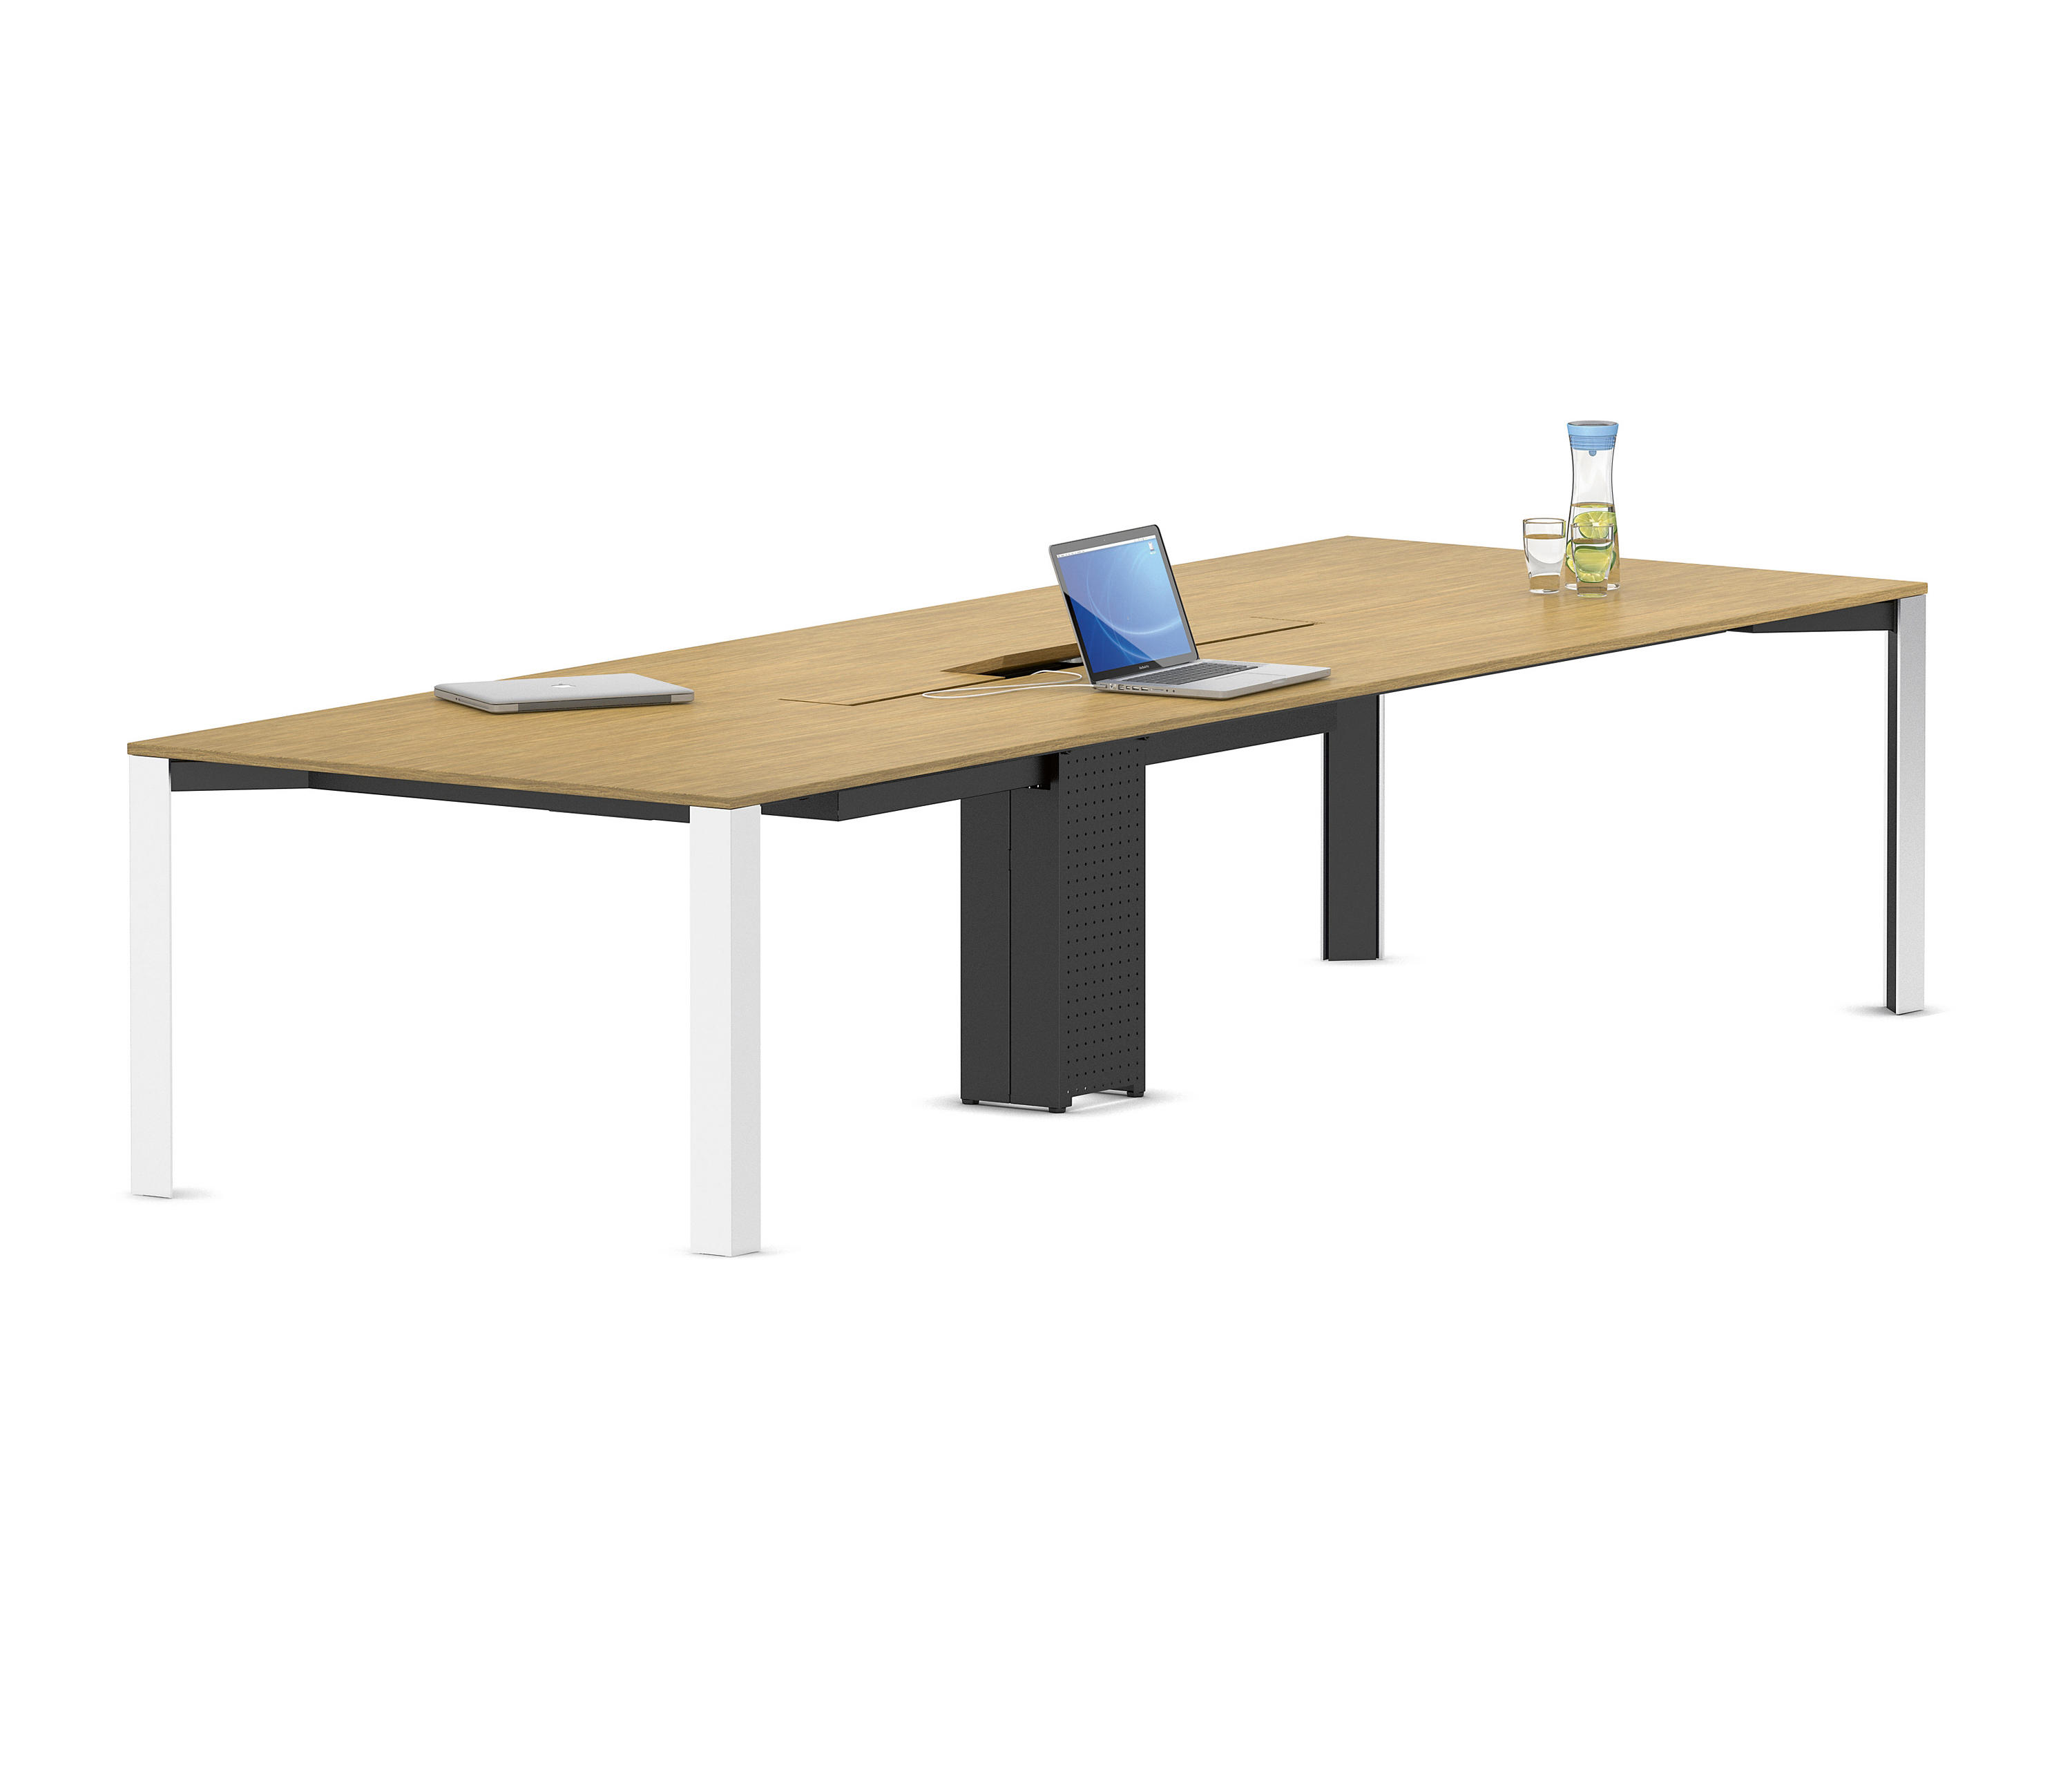 CONFERENCE TABLES High quality designer CONFERENCE TABLES